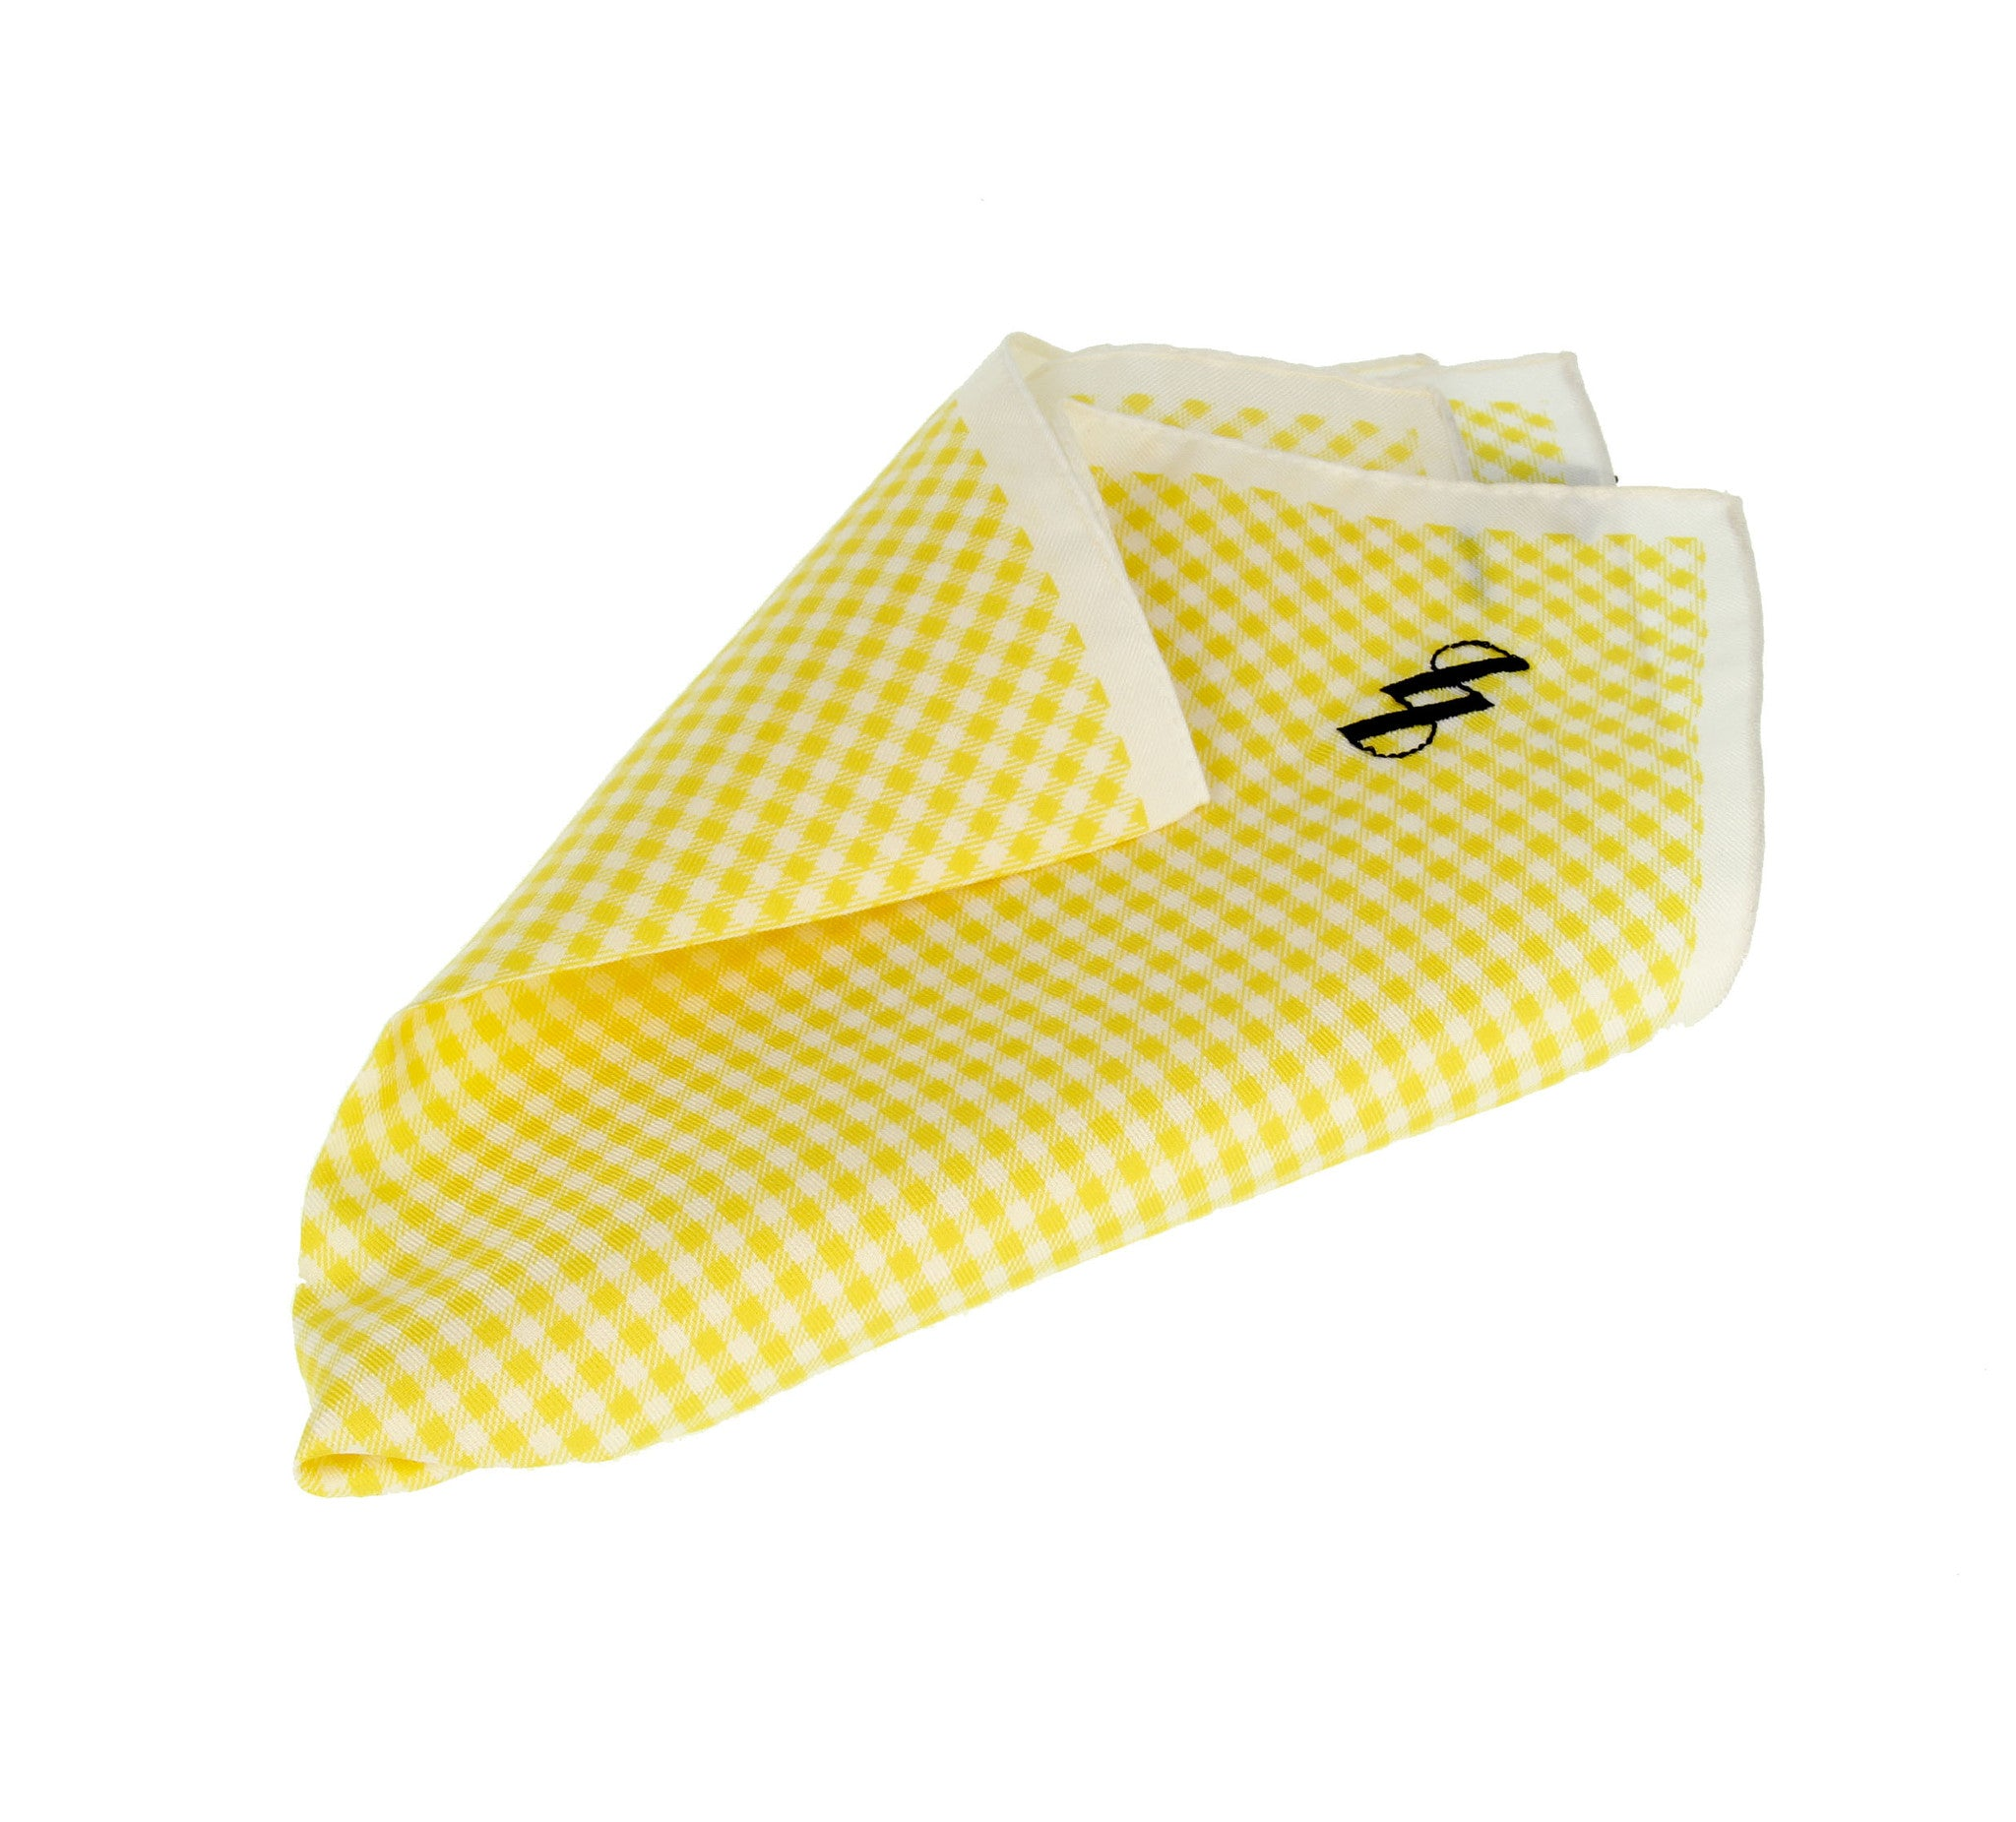 Yellow pocket square with Vichy patterns